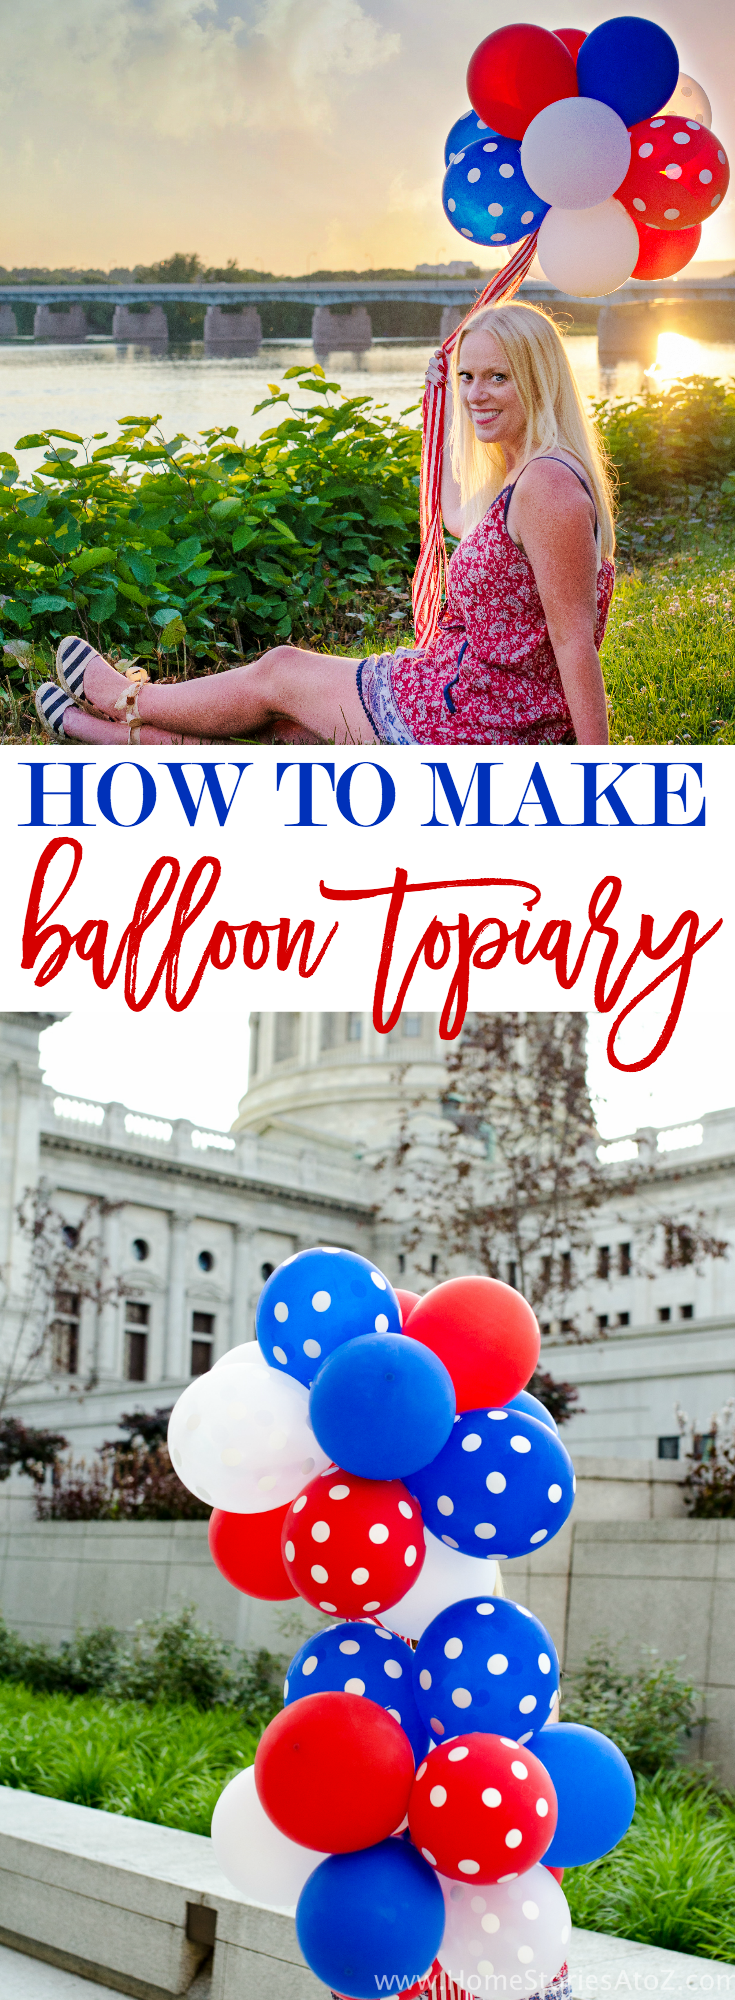 How to Make a Balloon Topiary Tutorial with video